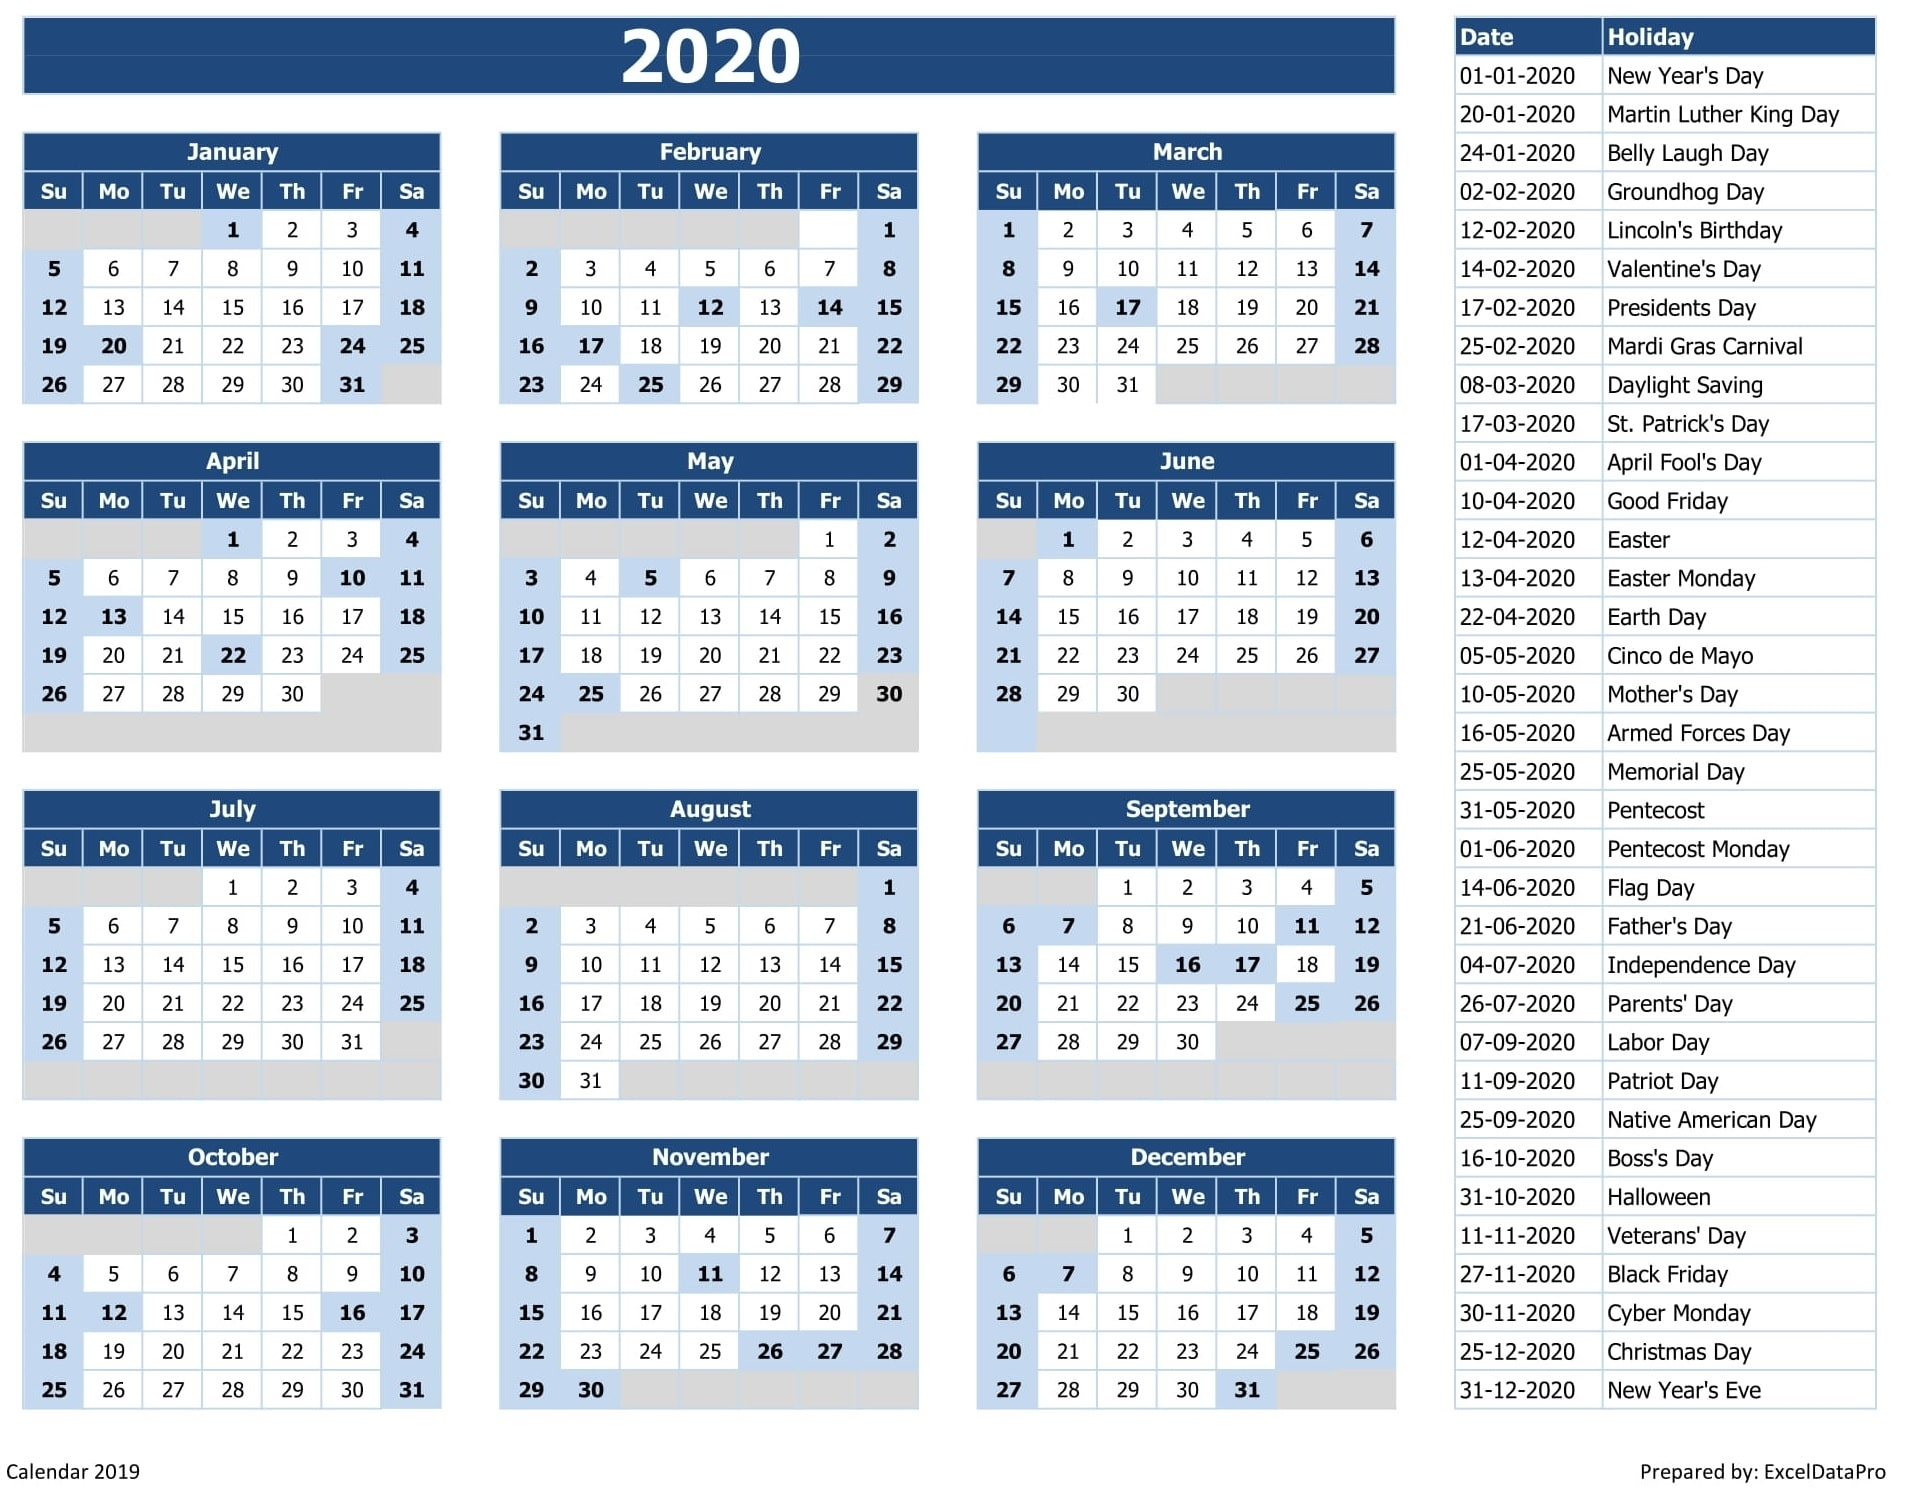 Download 2020 Yearly Calendar (Sun Start) Excel Template for 2020 Calendar With All Function